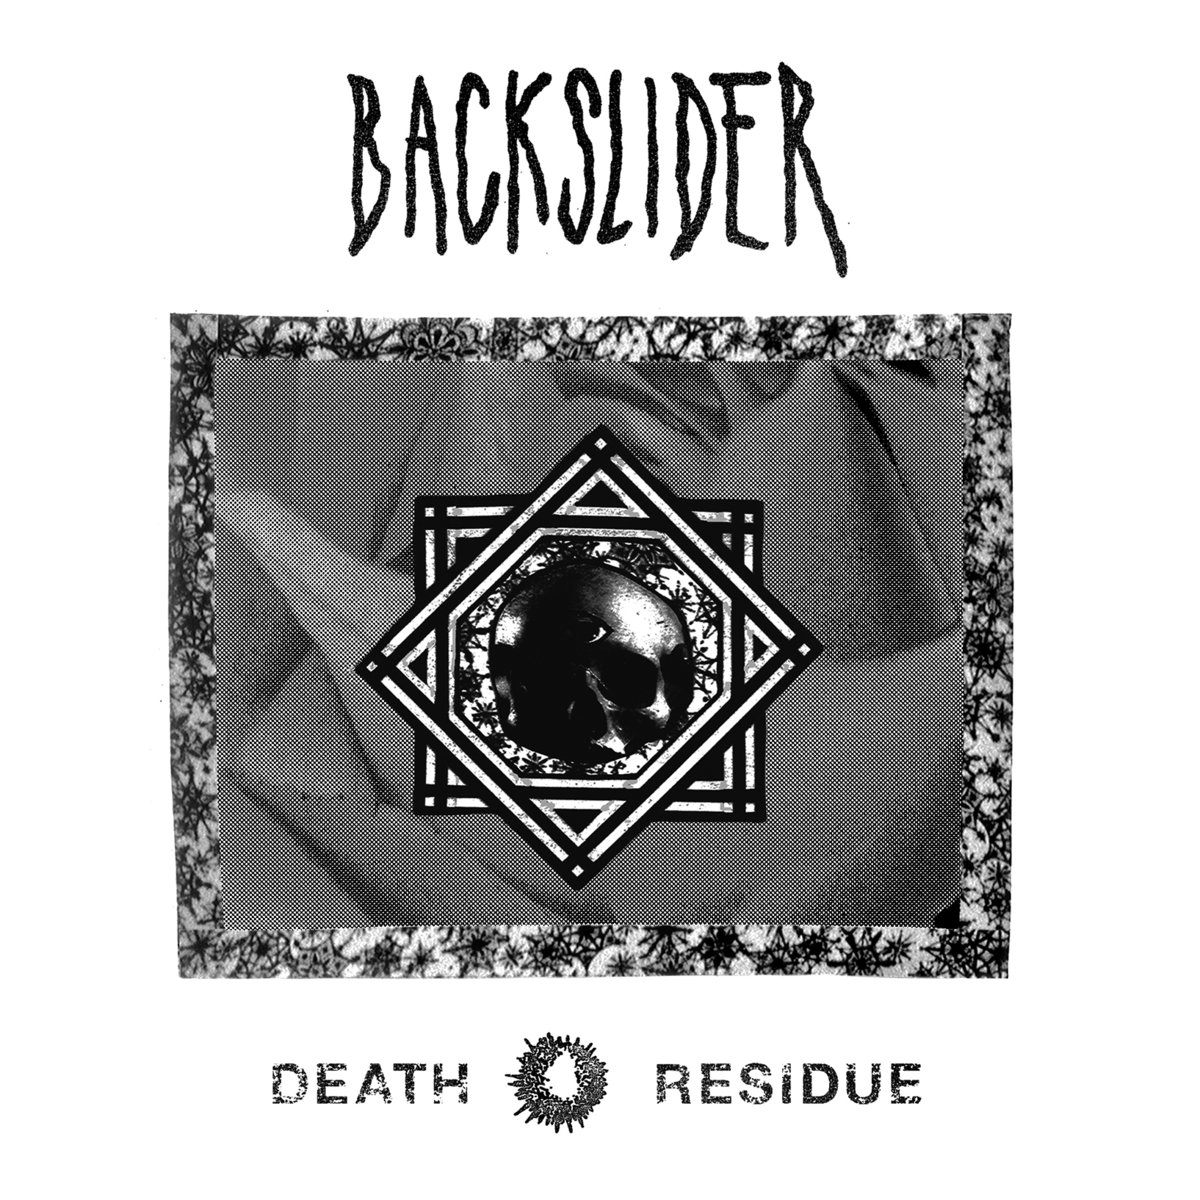 BACKSLIDER - DEATH RESIDUE 7